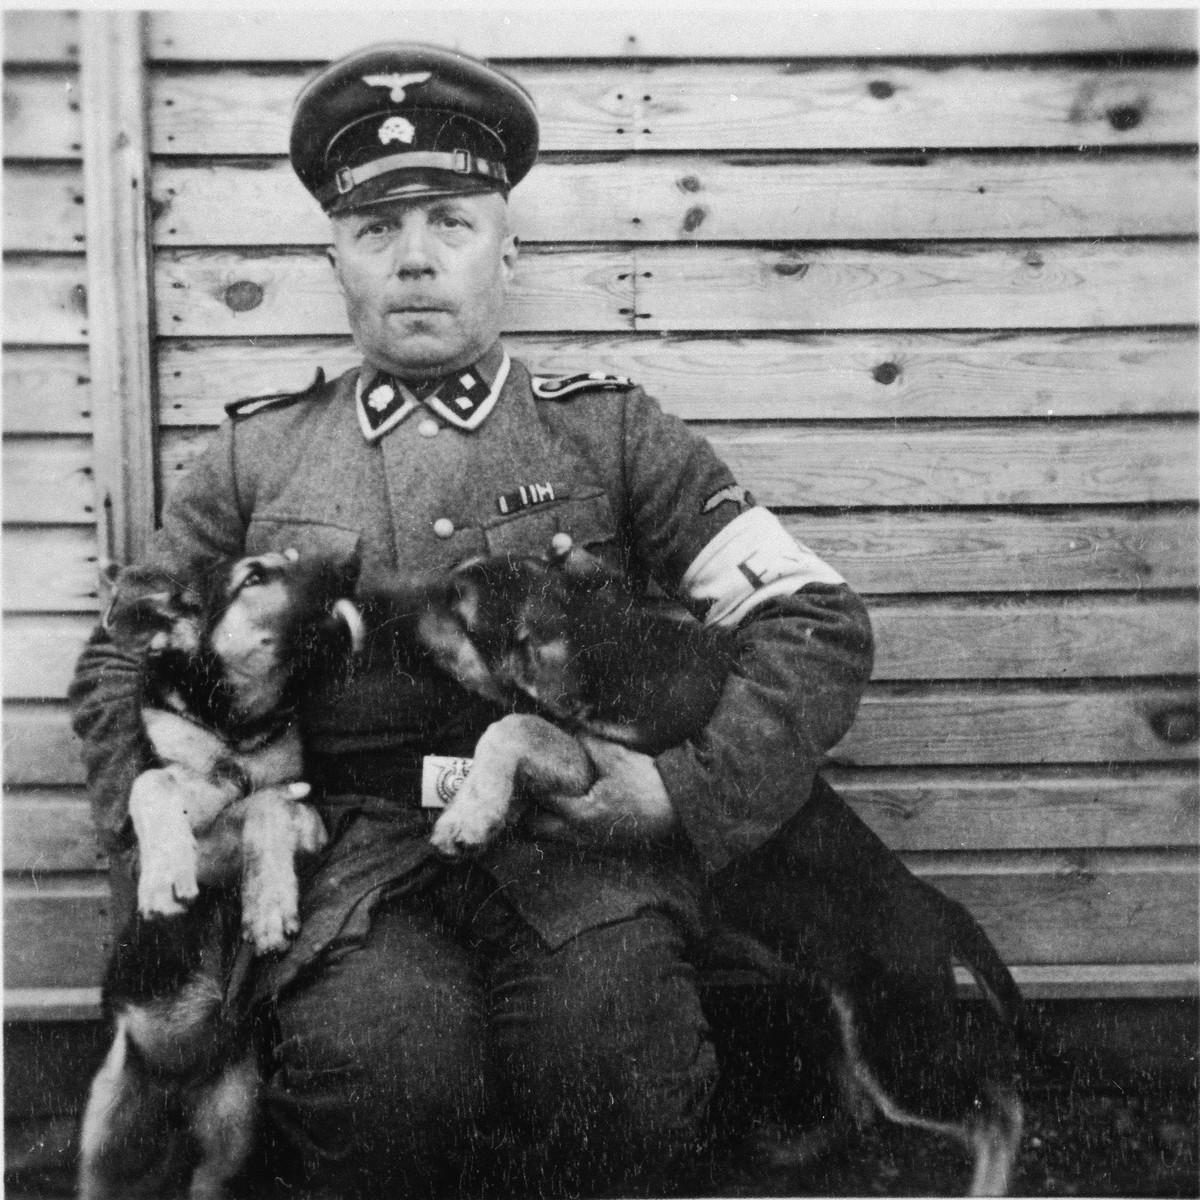 SS-man Papka poses with two puppies in the Gross-Rosen concentration camp.